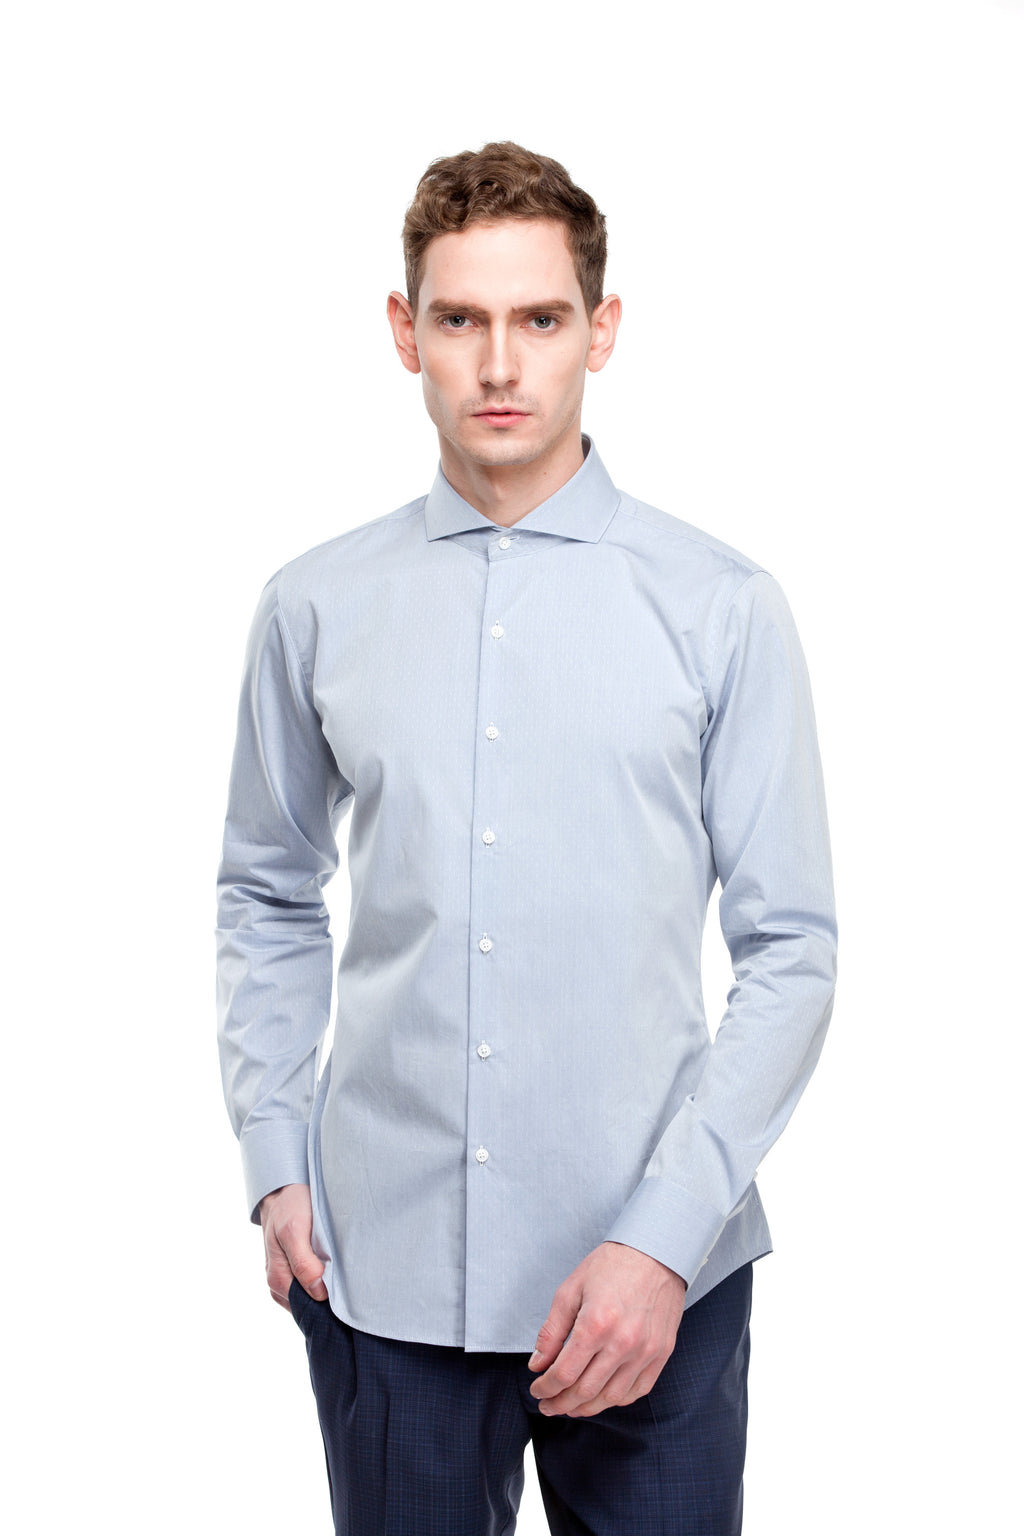 Custom Light Blue Shirt ottotos